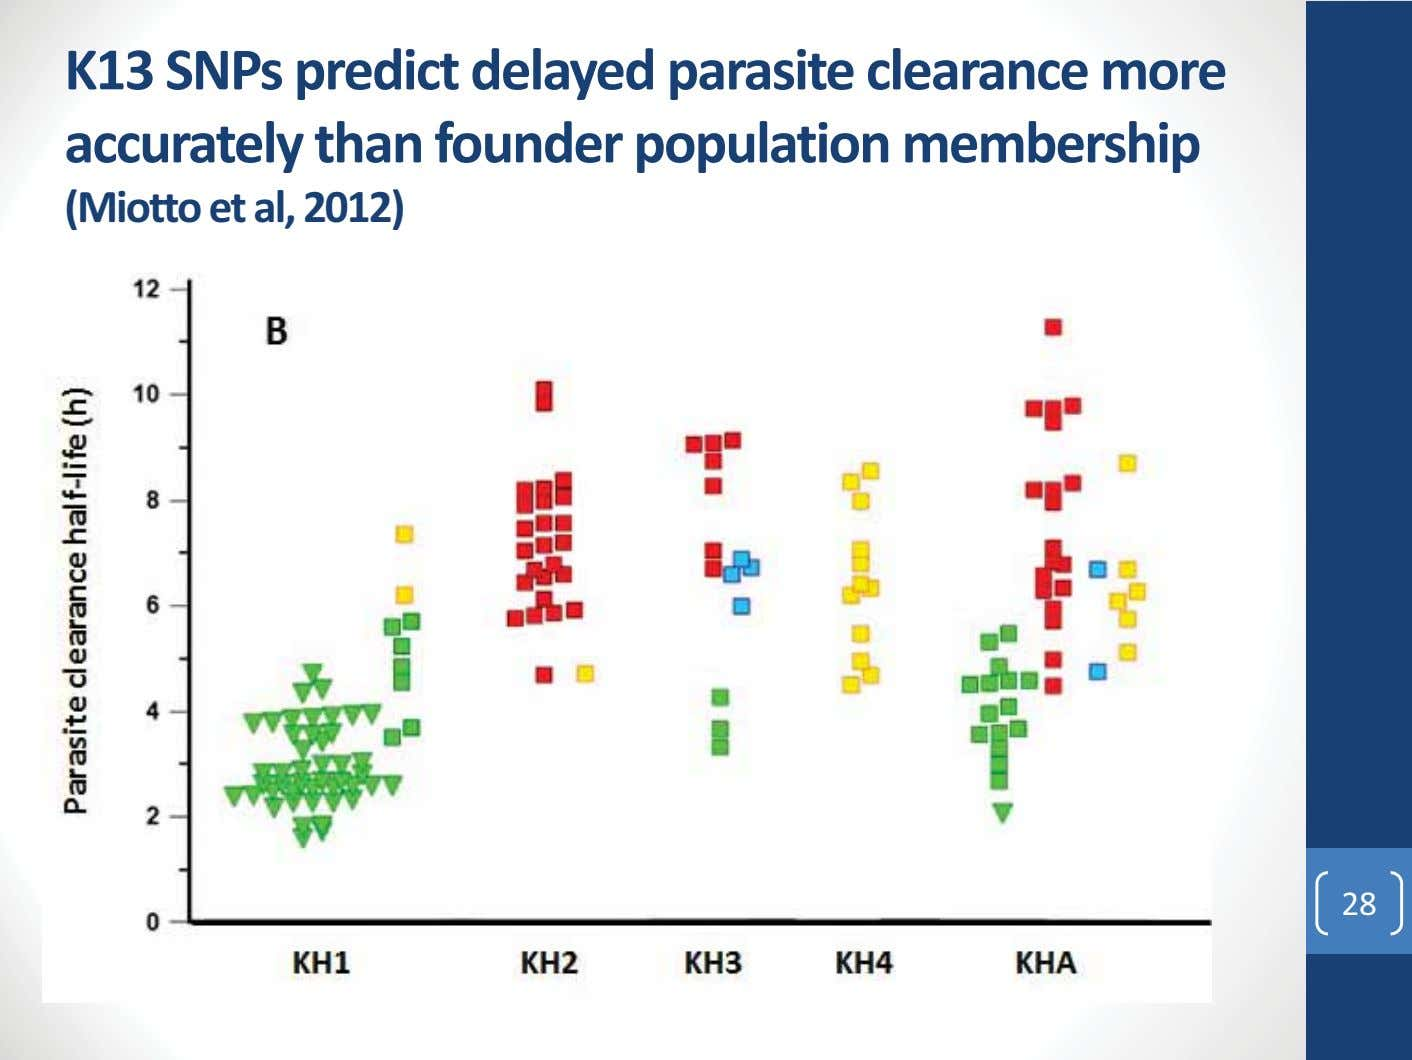 K13 SNPs predict delayed parasite clearance more accurately than founder population membership (Miotto et al,